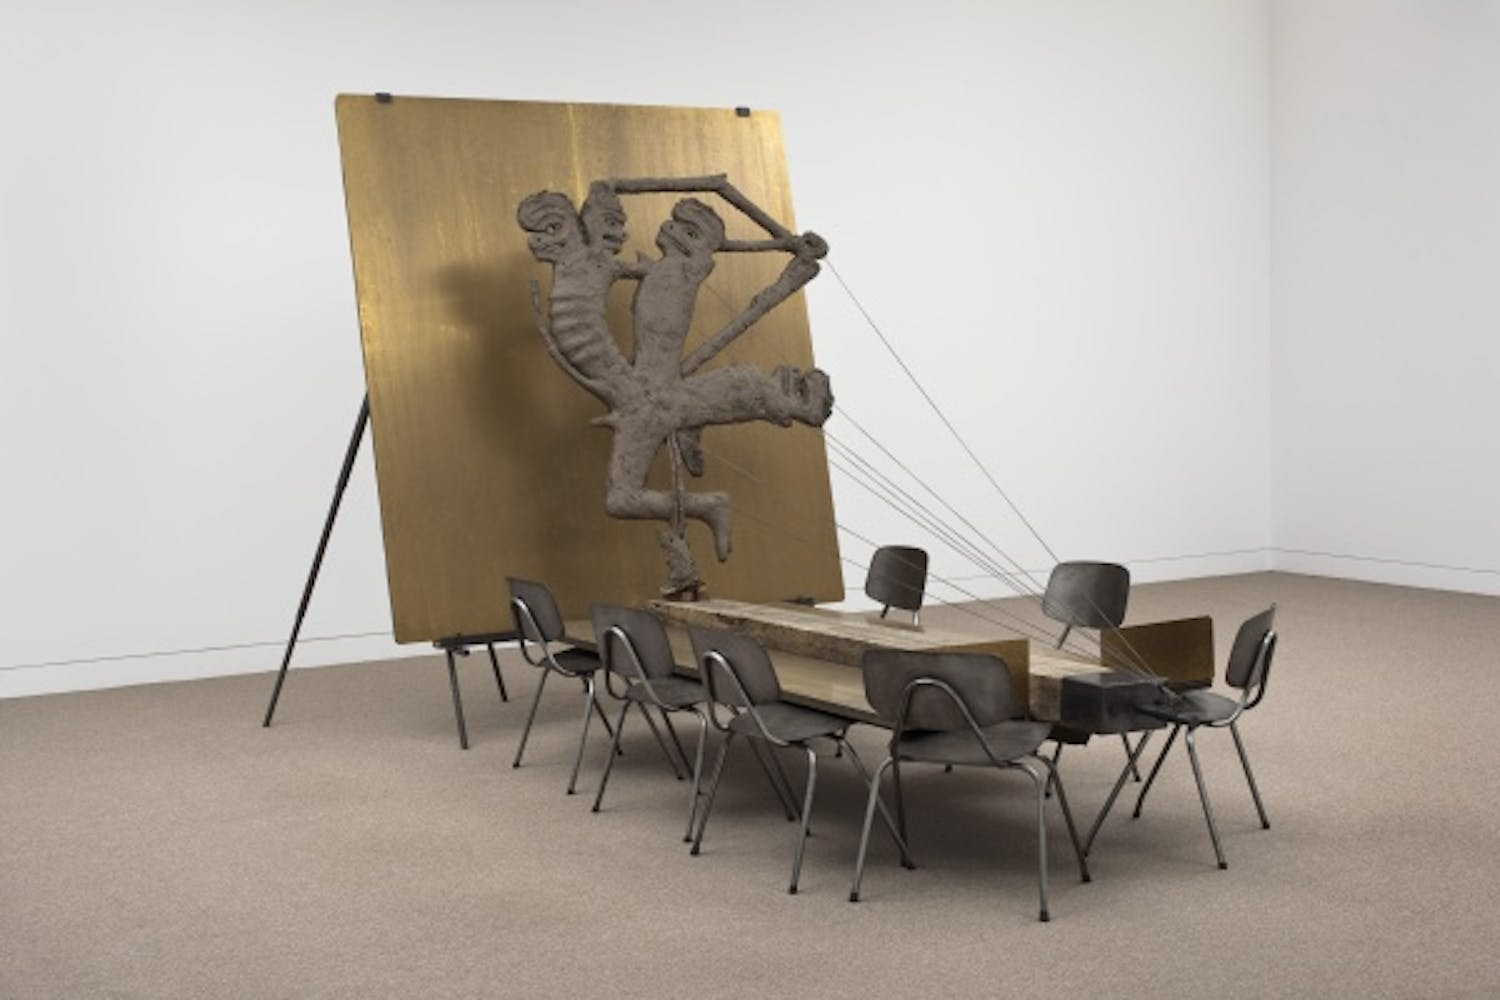 Mark Manders, Anthropological Trophy, 2010